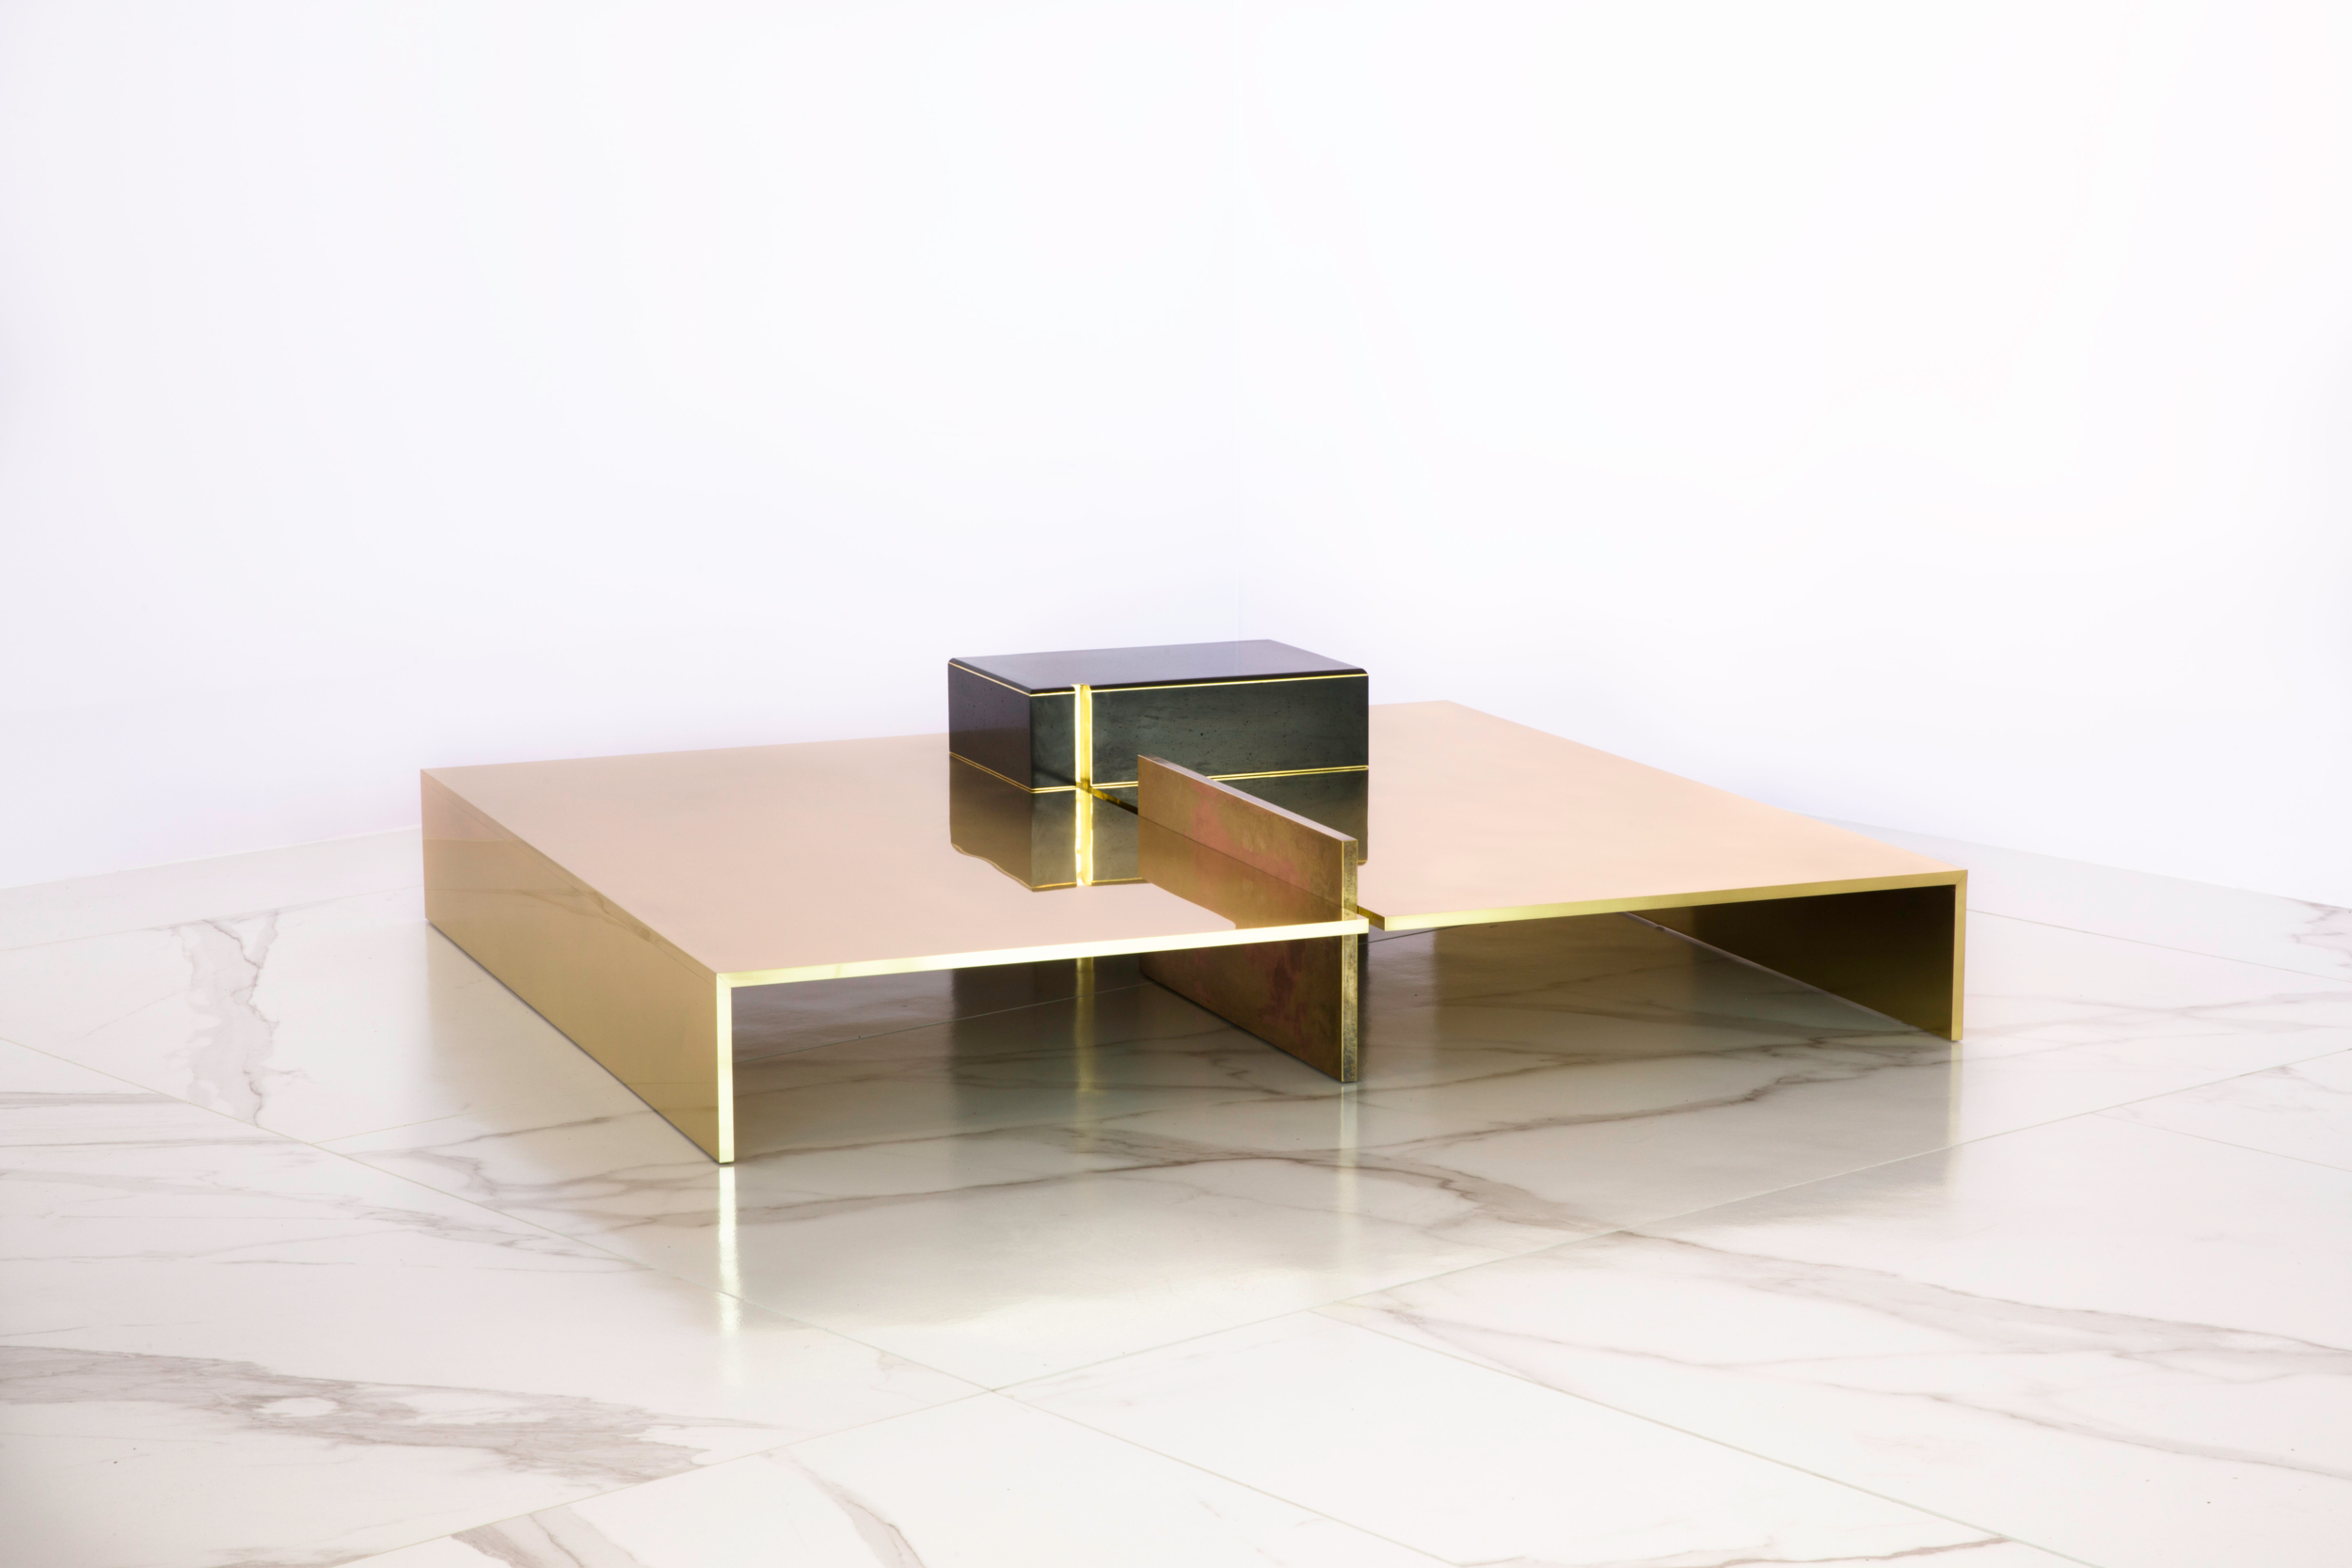 [[The MMXVS1 low center table - on display at SORS - by appointment///La table basse MMXVS1 -exposée au SORS -sur rendez-vous]]